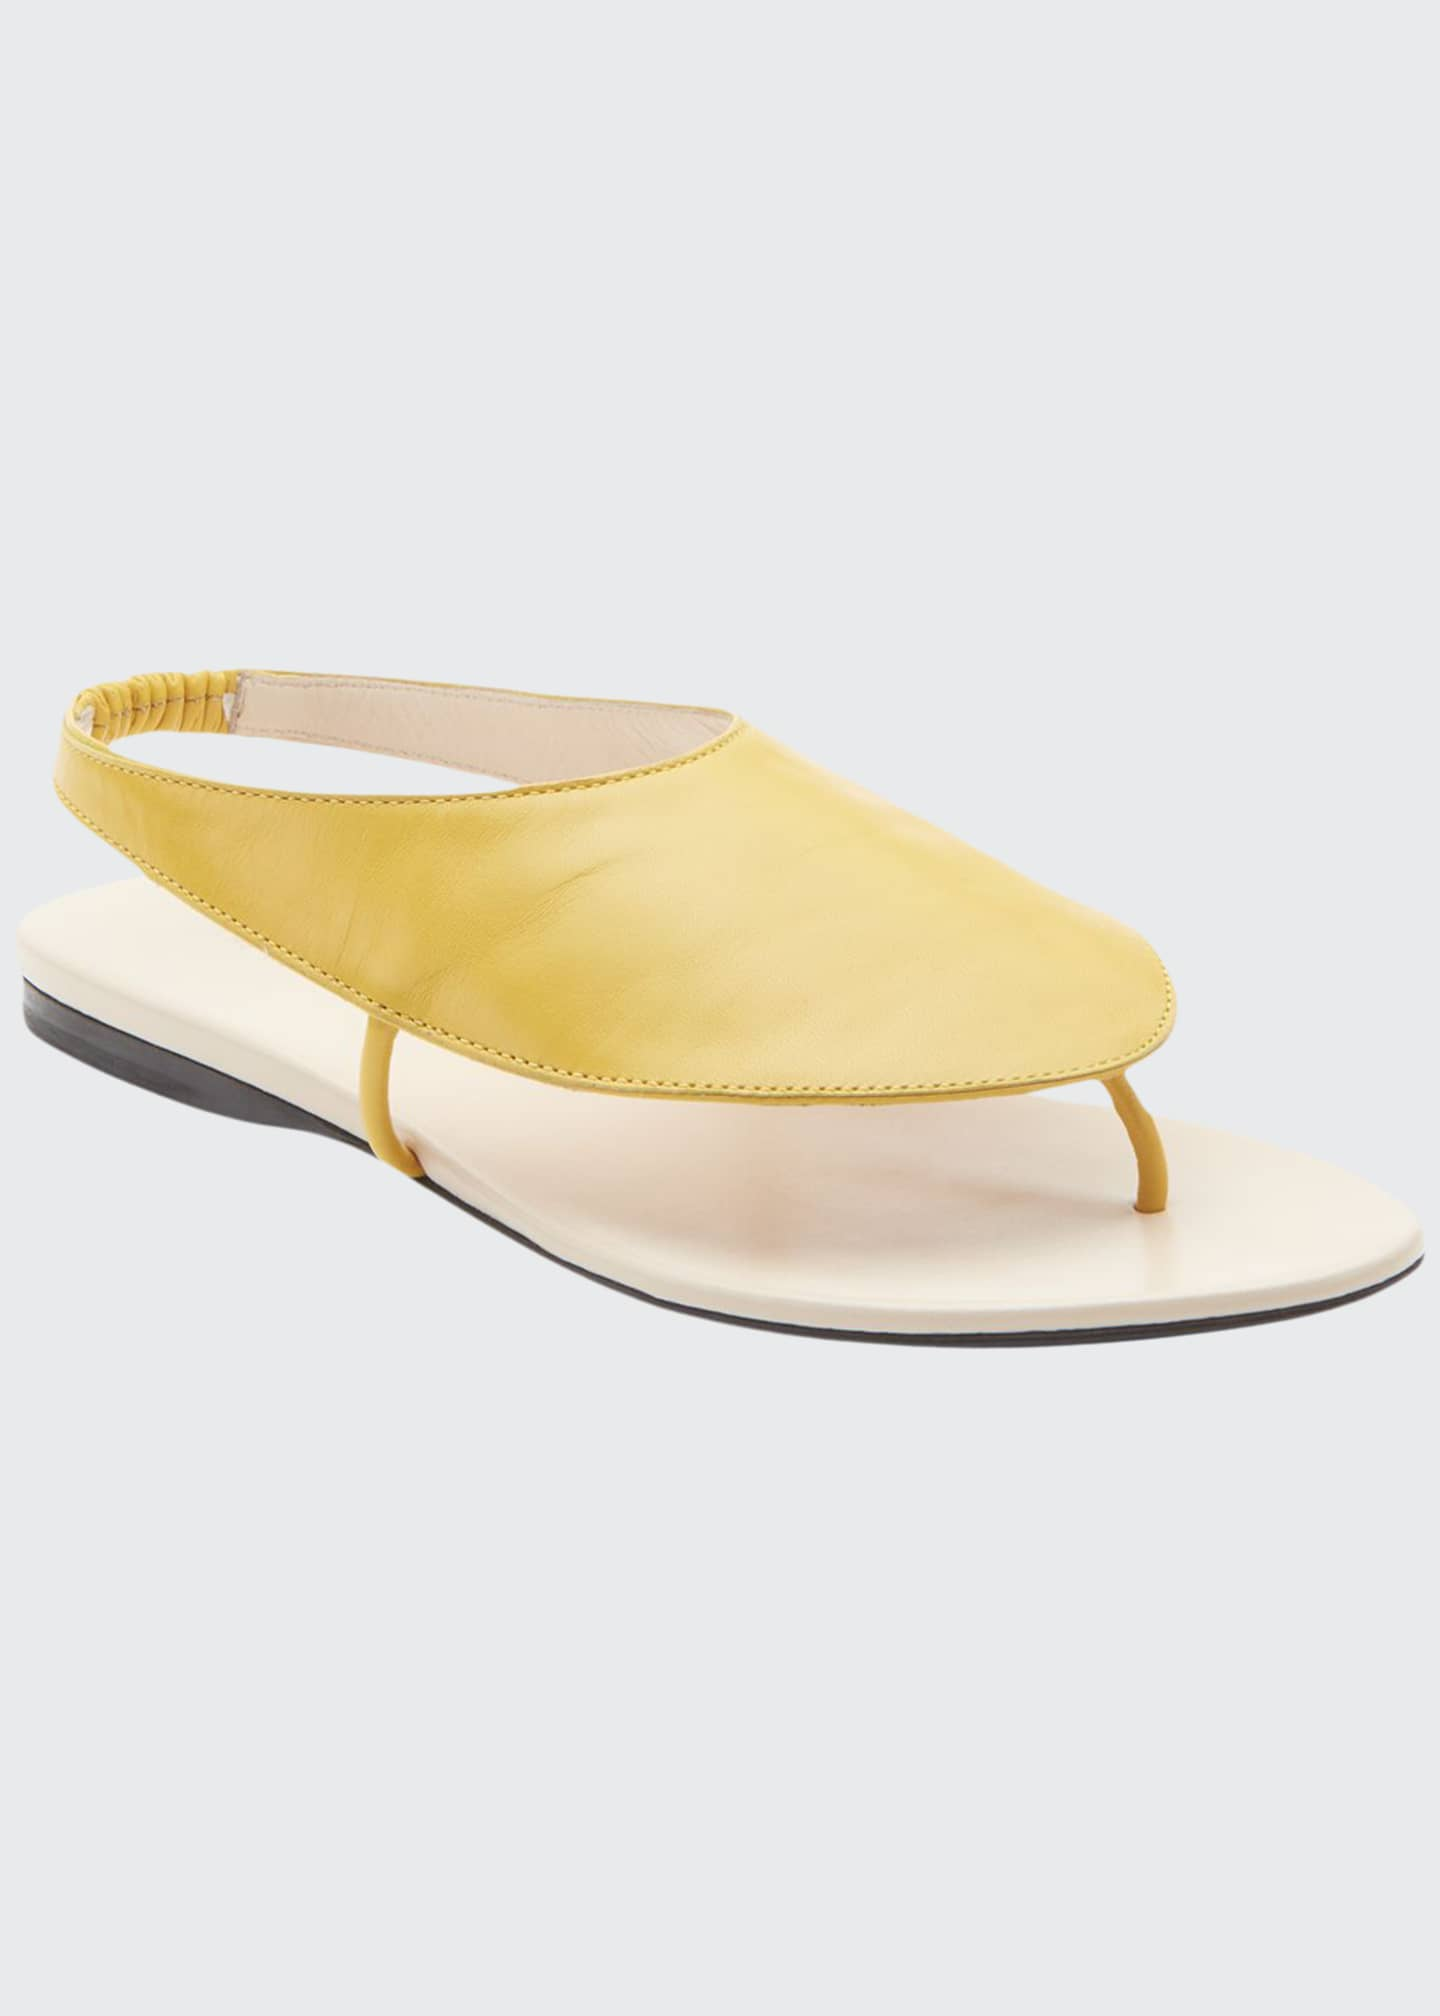 Image 1 of 3: Ravello Leather Stretch Sandals